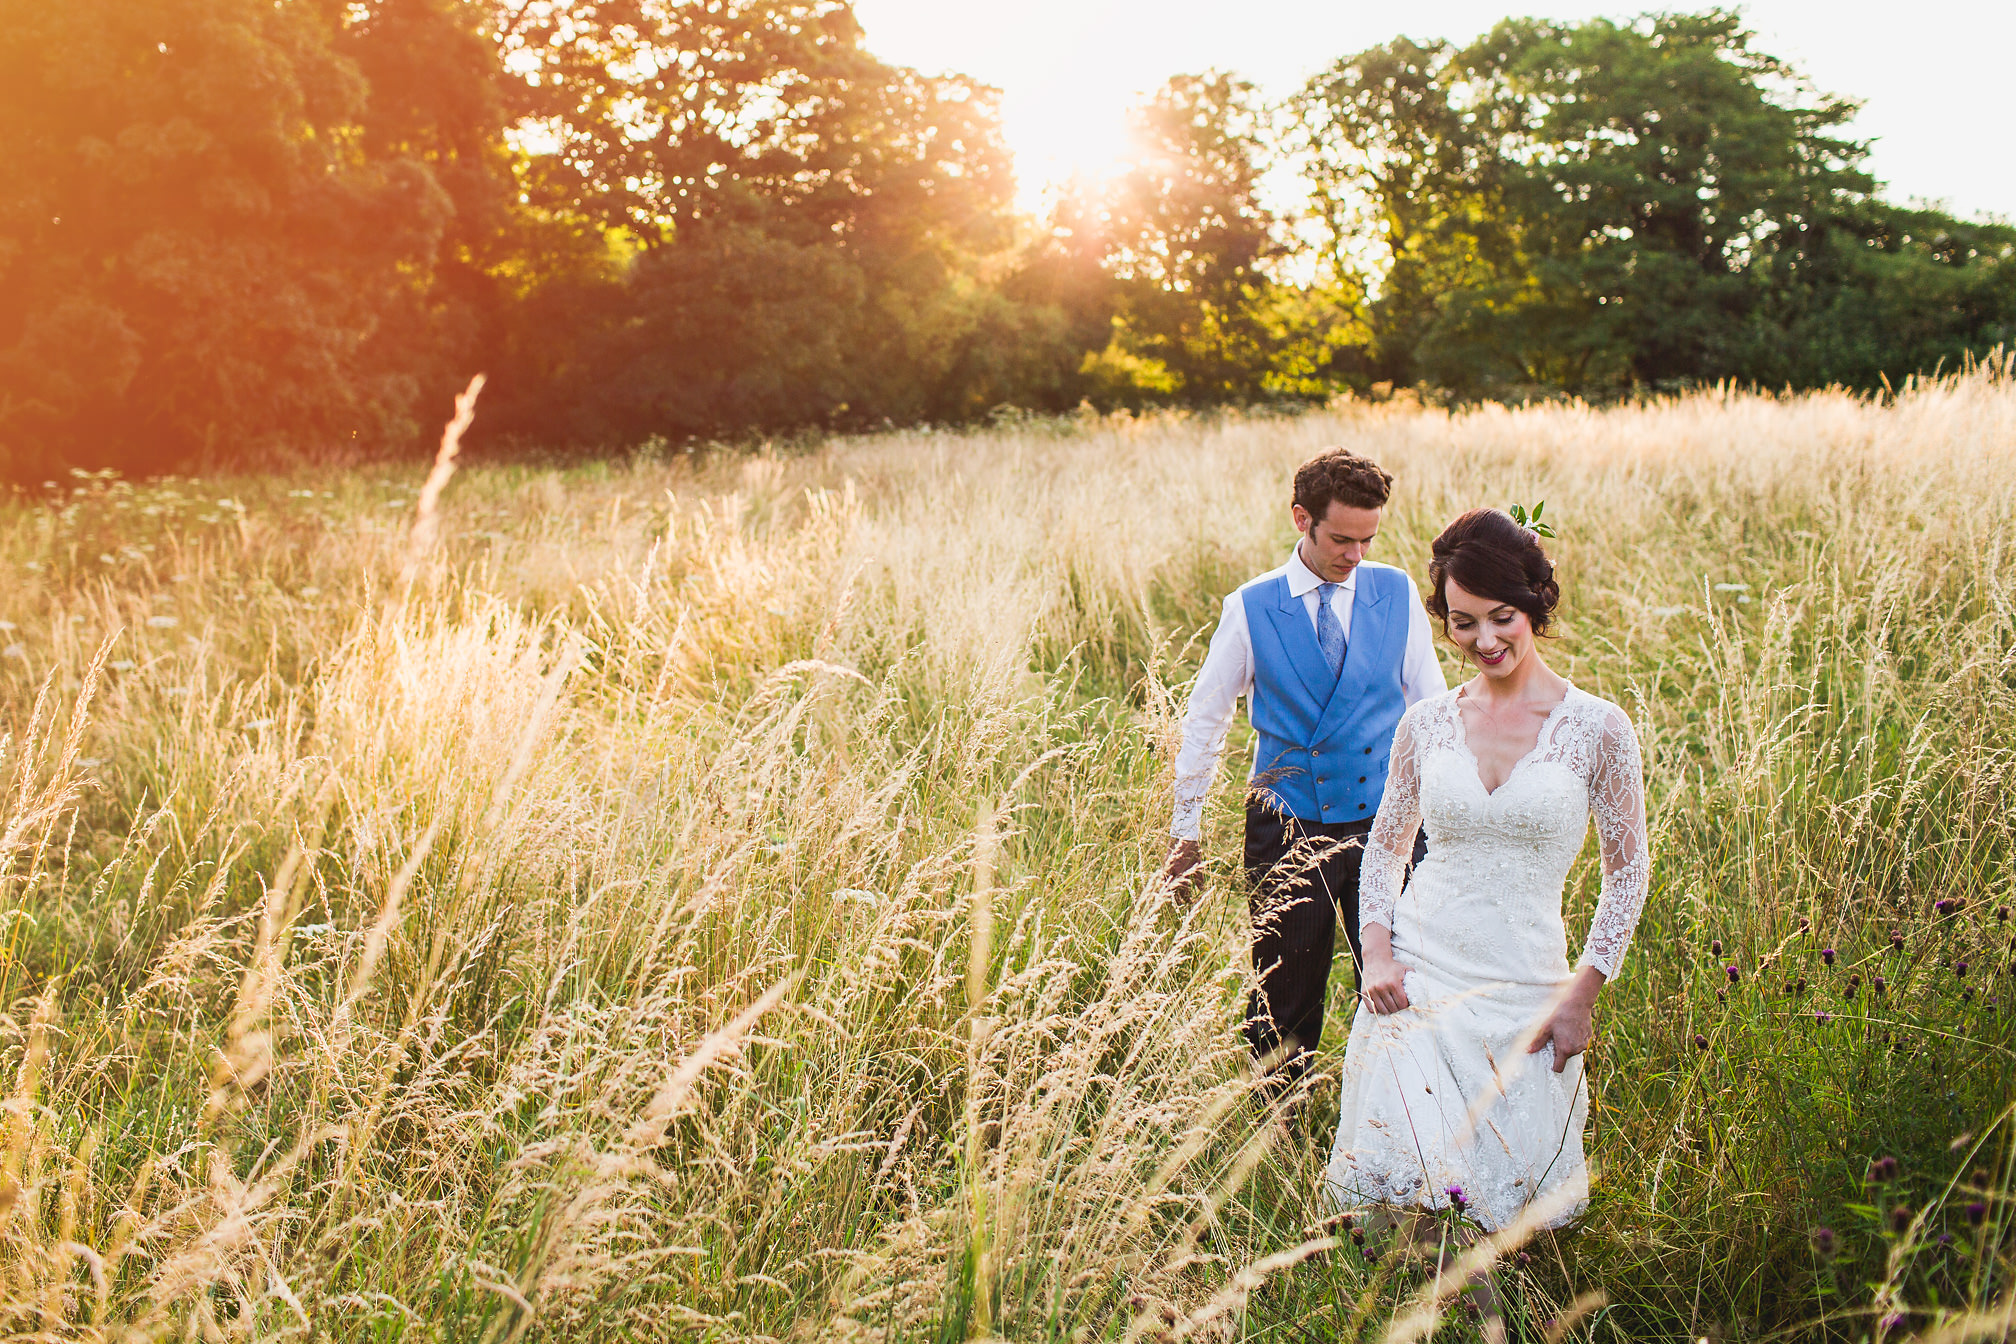 MyWed Editors Choice - Couples Portrait in a Field at Sunset